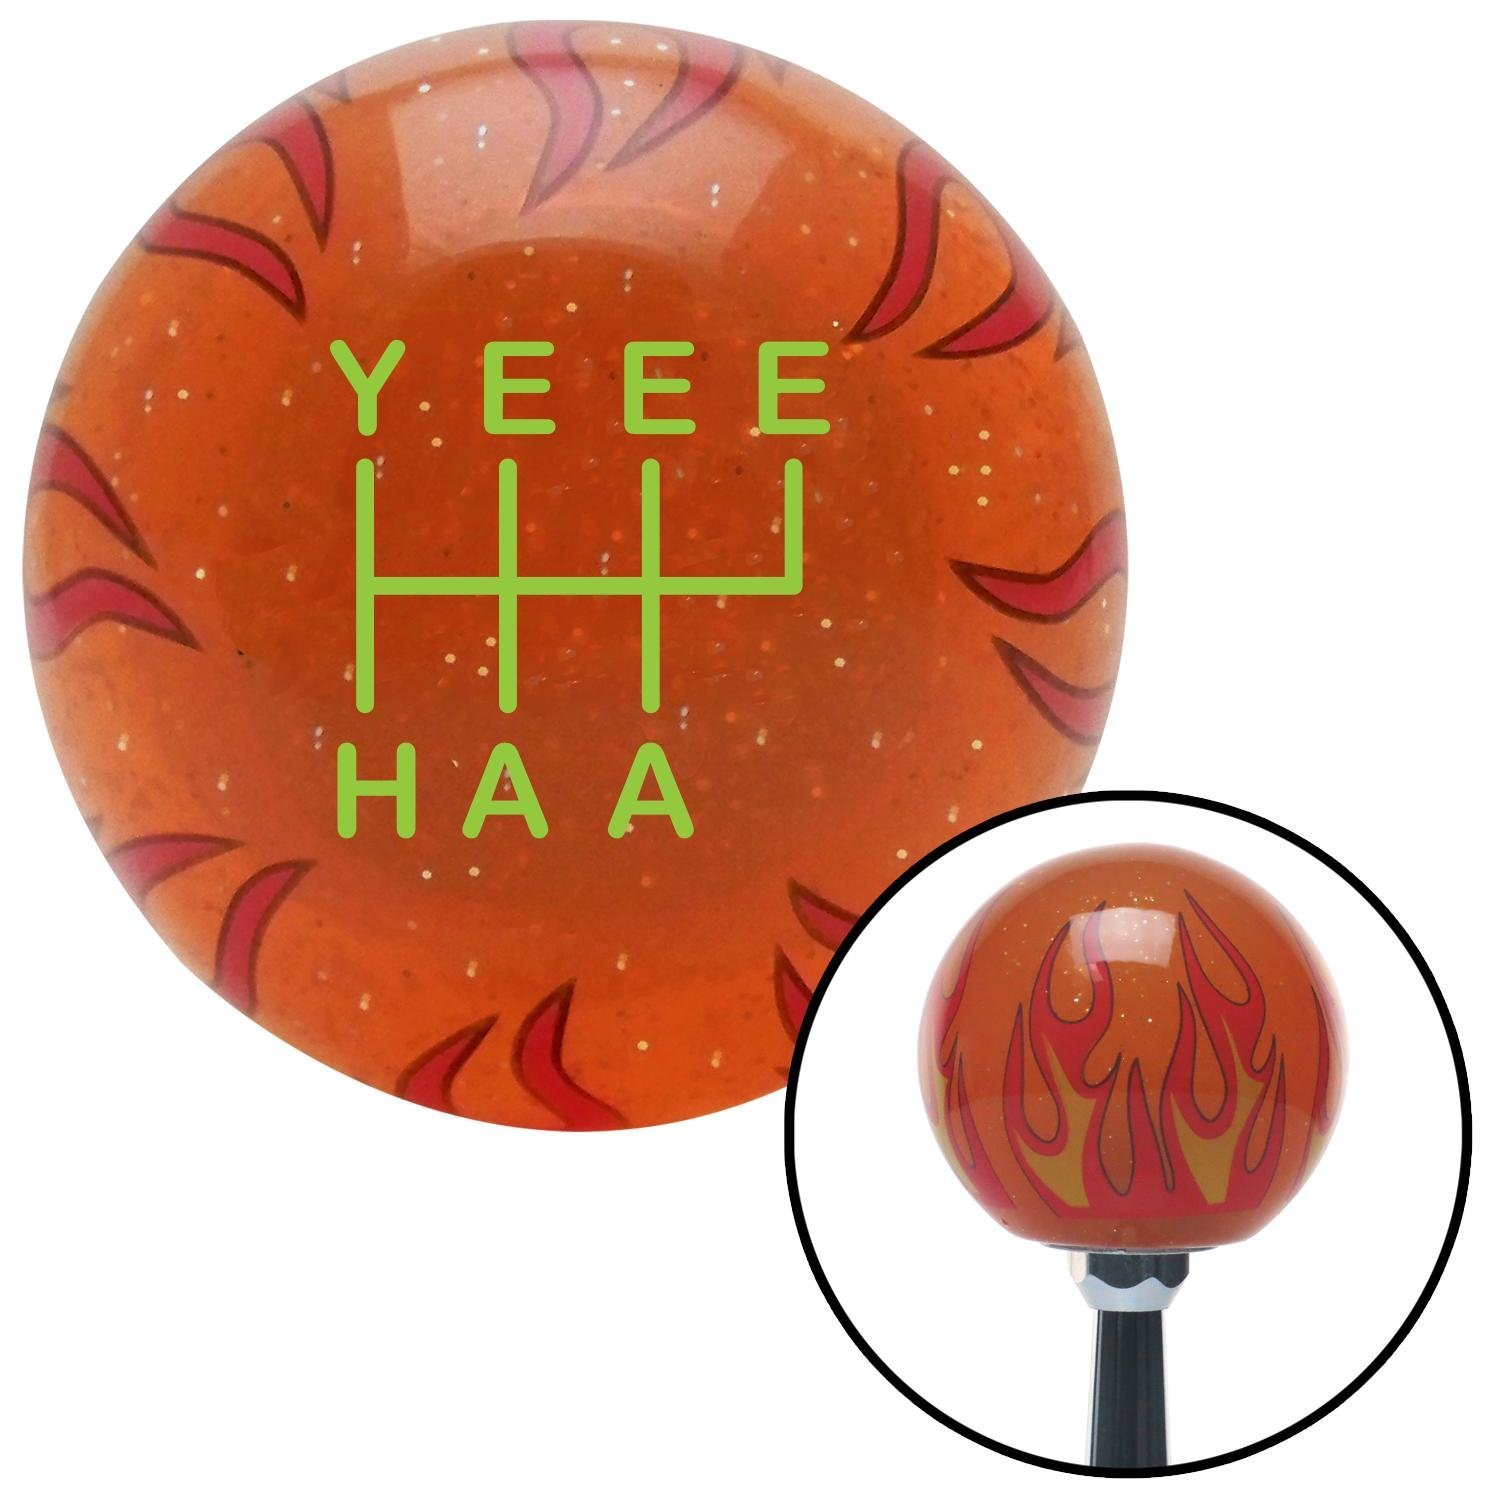 Green YeeeHaa 6 Speed RUR Orange Flame Metal Flake with M16 x 1.5 Insert American Shifter 302339 Shift Knob